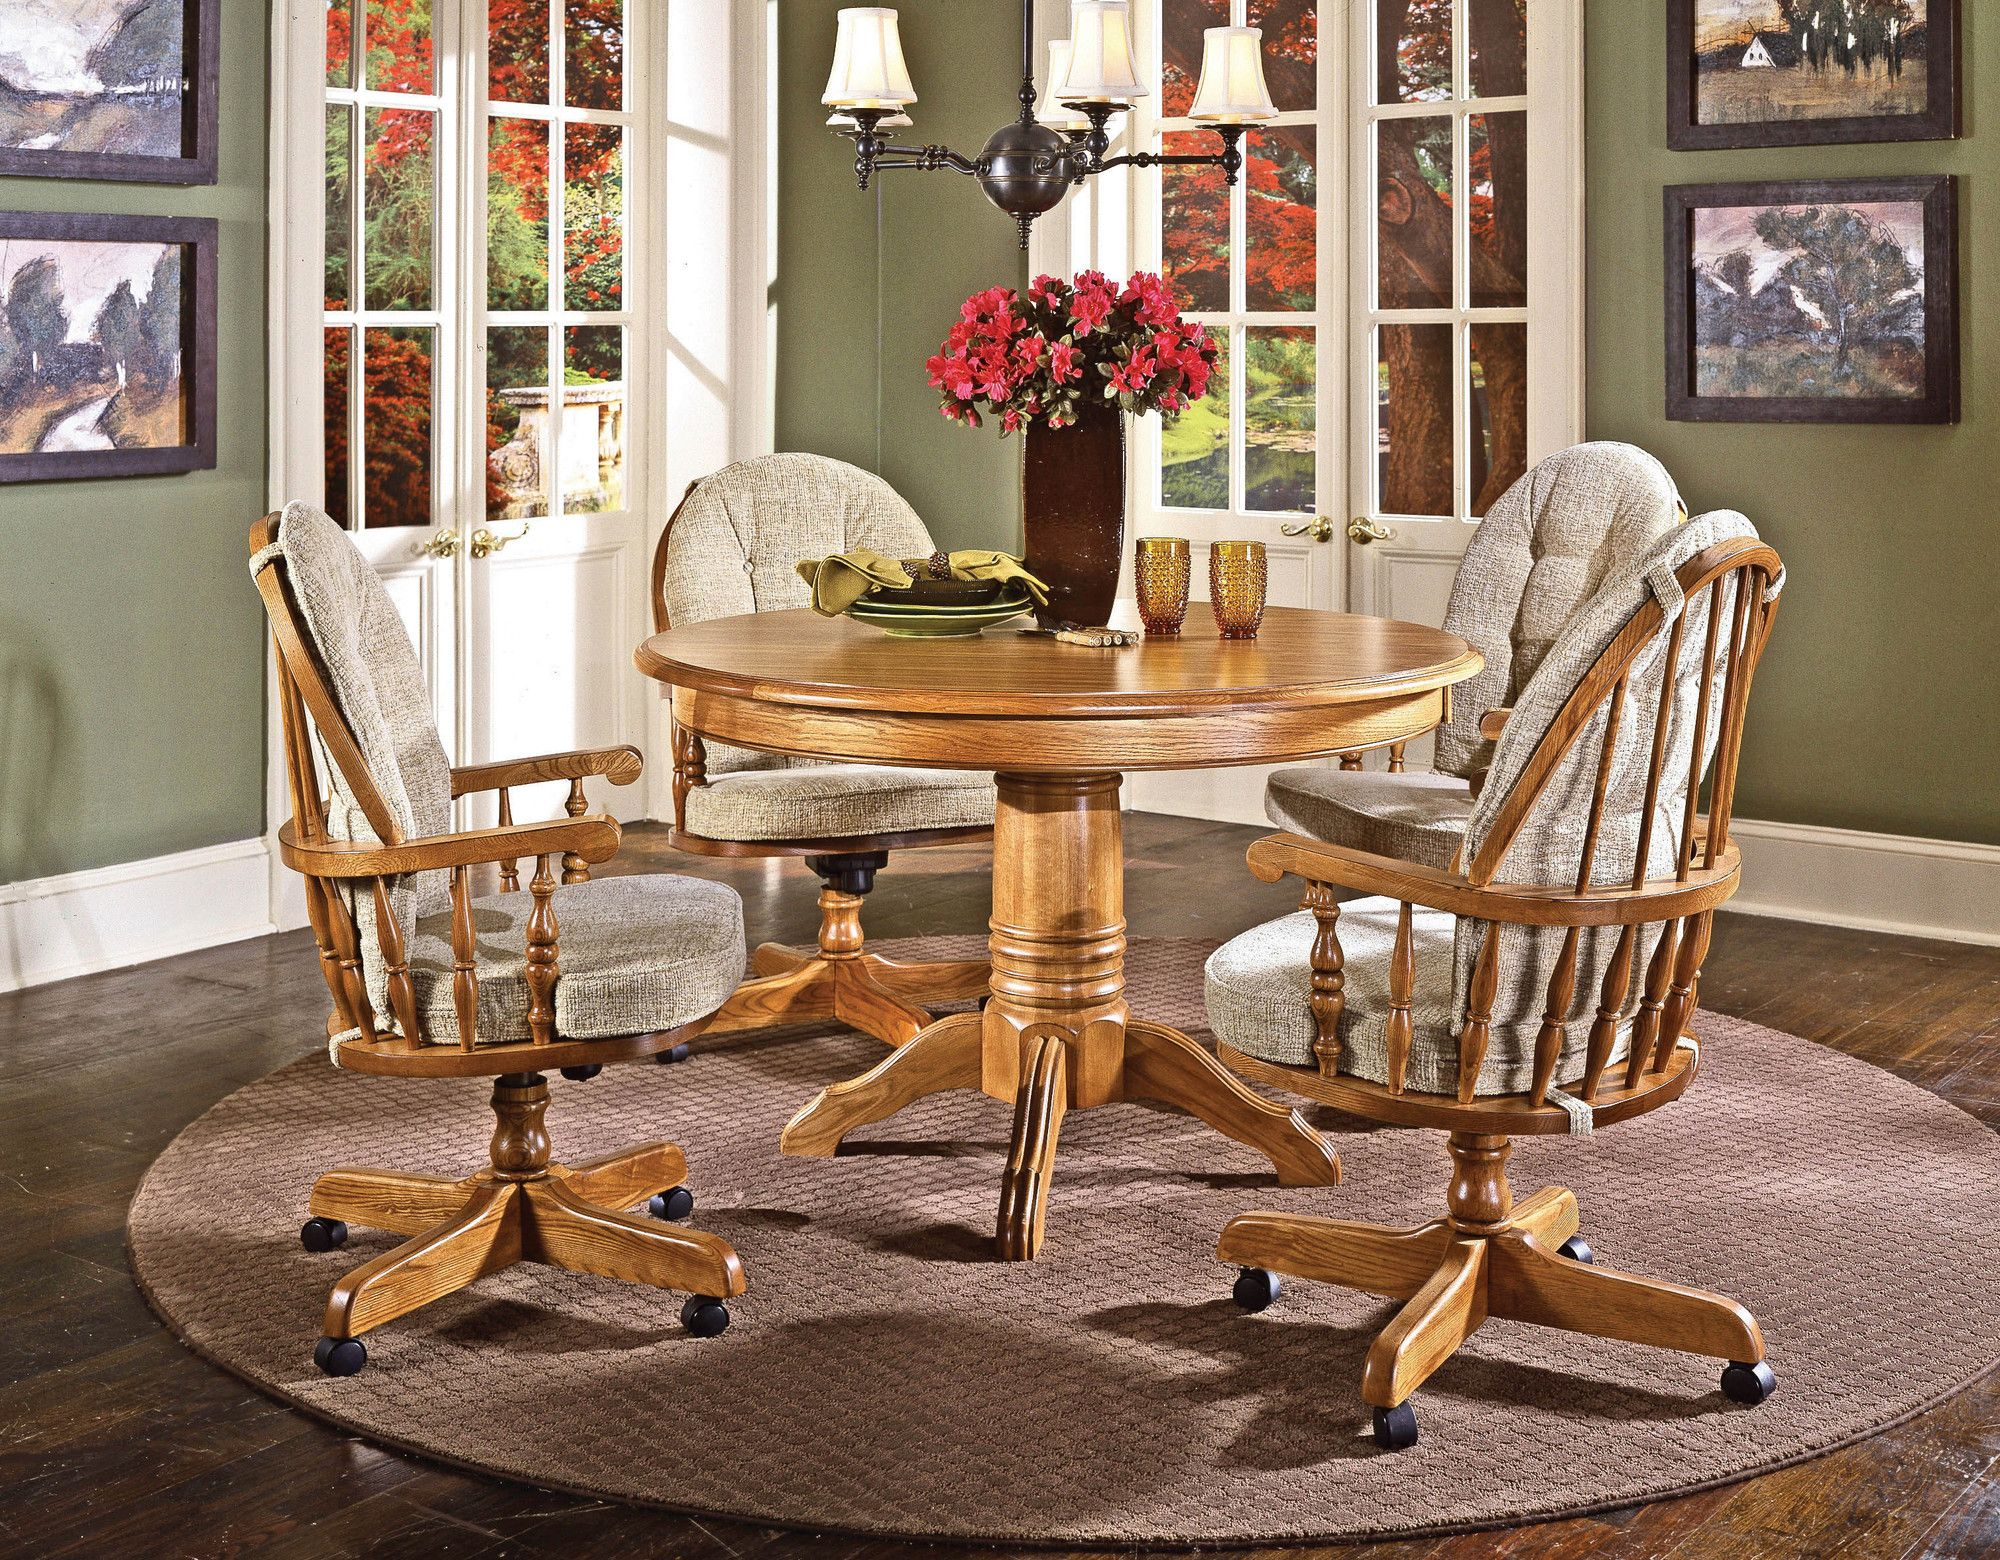 Cochrane Furniture Cushions For Thresher S Too Bow Back Caster Chair I Have This Set And Am Looking For R Dinette Furniture Dinette Chairs Dining Room Chairs